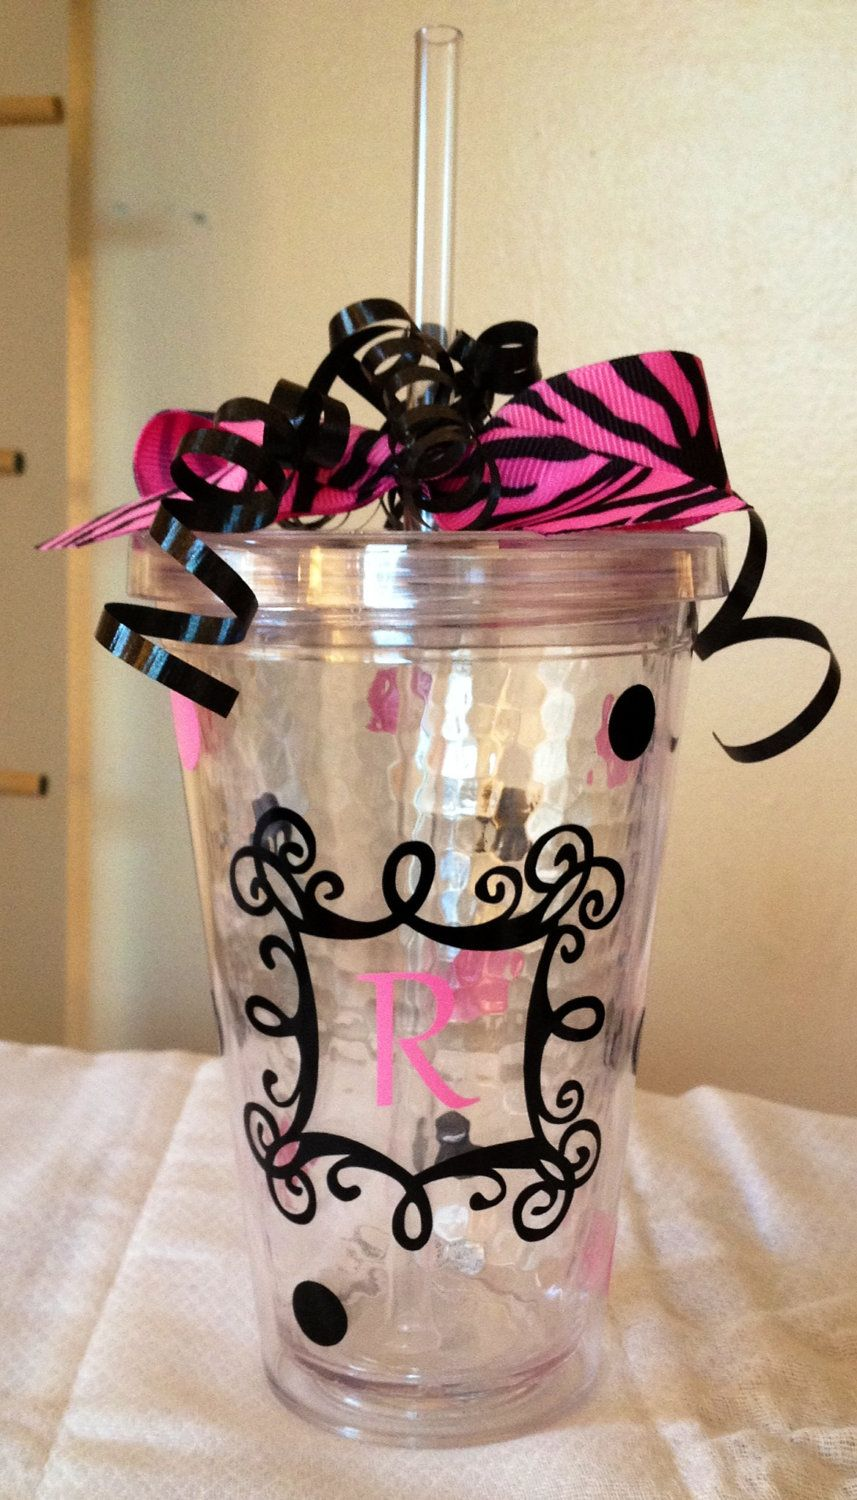 Diy personalized acrylic tumbler with lid straw